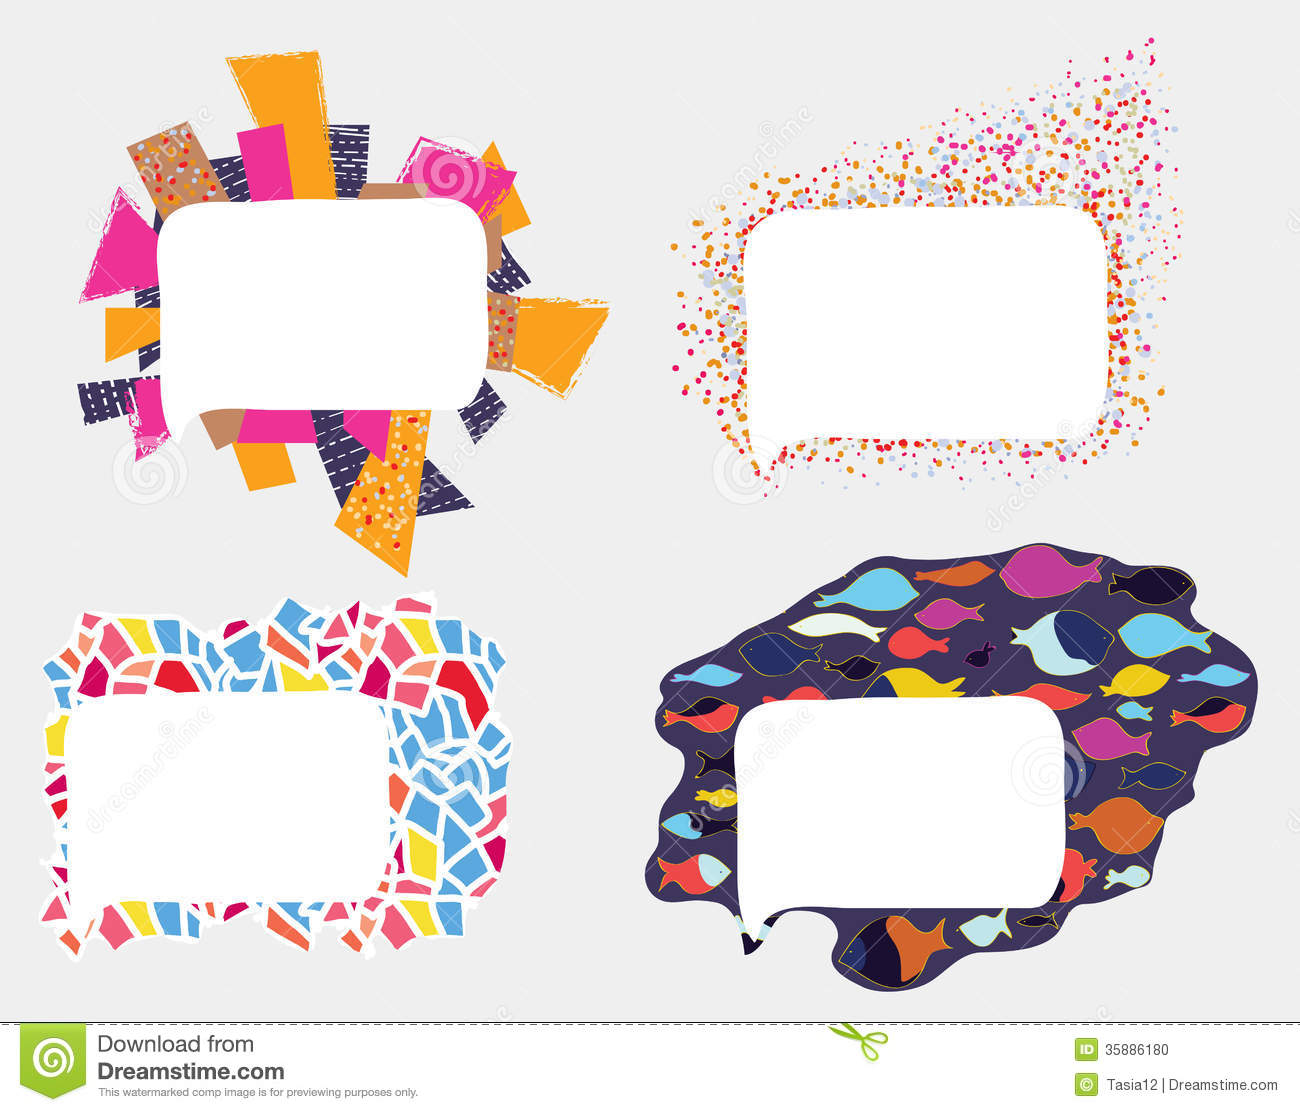 Cute Lace Wallpaper Frames And Borders Whimsical Design Stock Vector Image